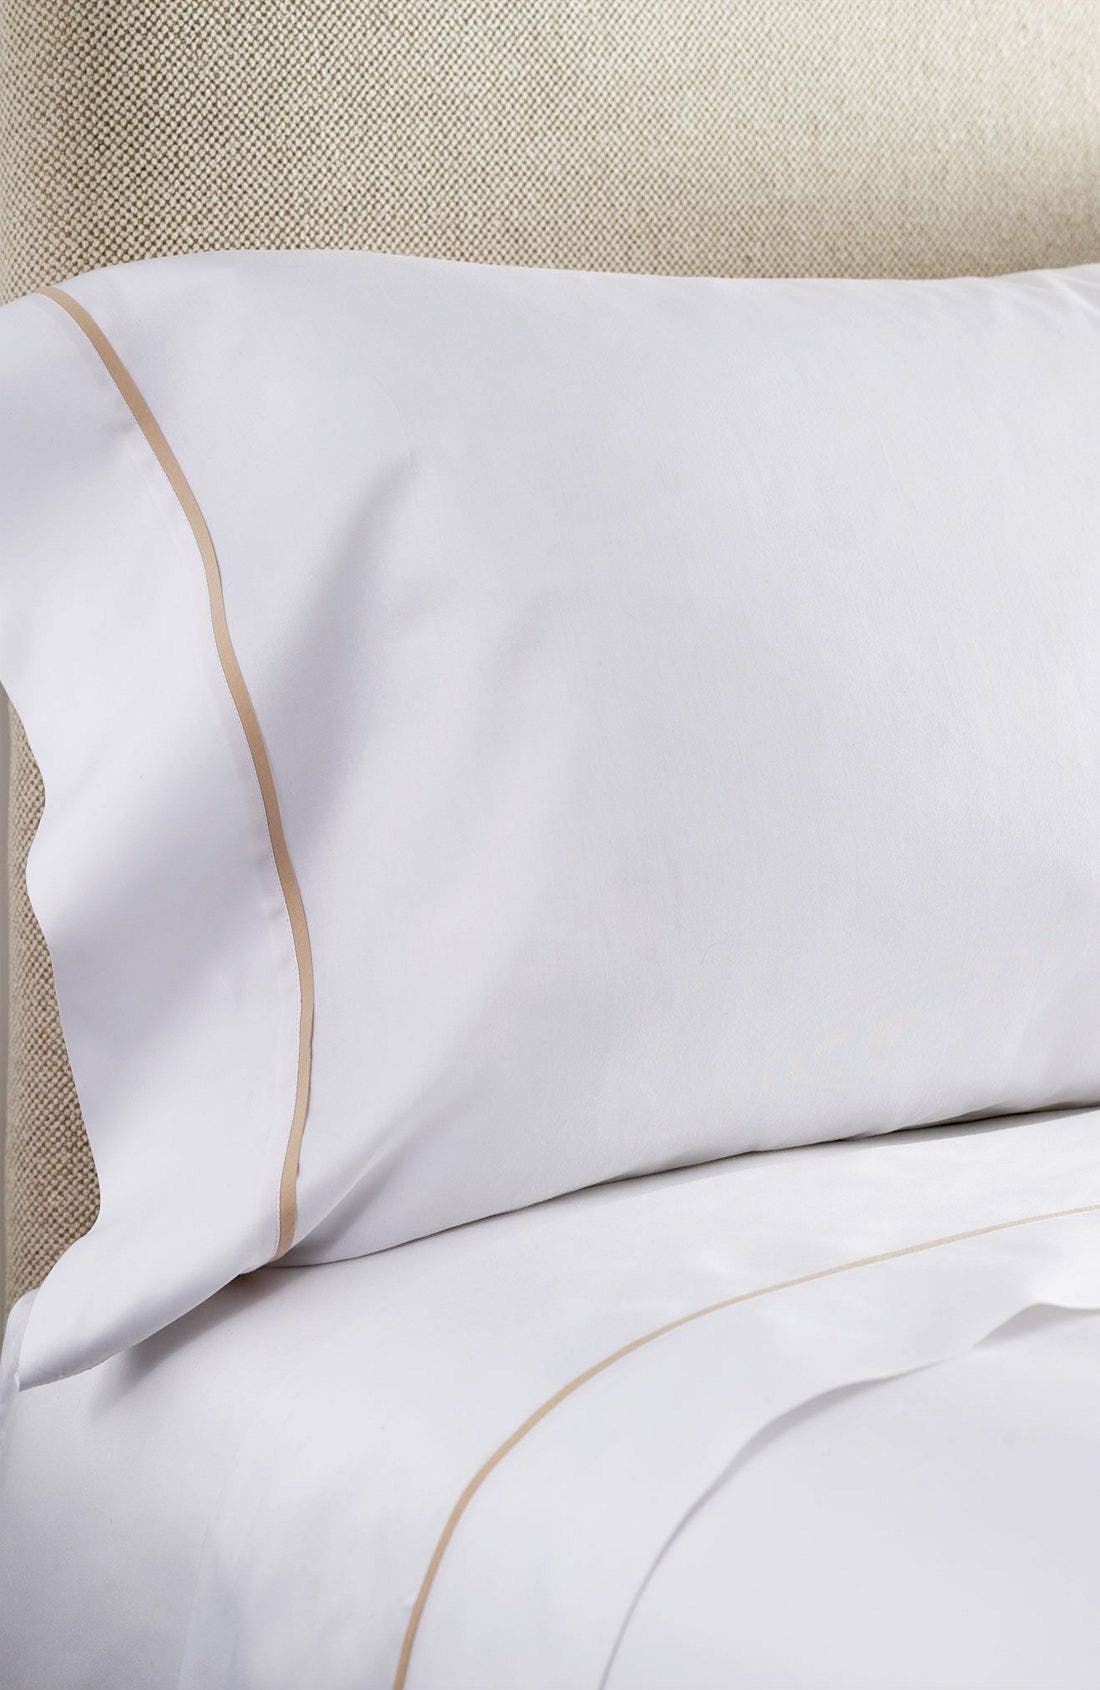 Westin Heavenly Bed<sup>®</sup> 300 Thread Count Egyptian Cotton Luxe Pillowcase,                         Main,                         color, White